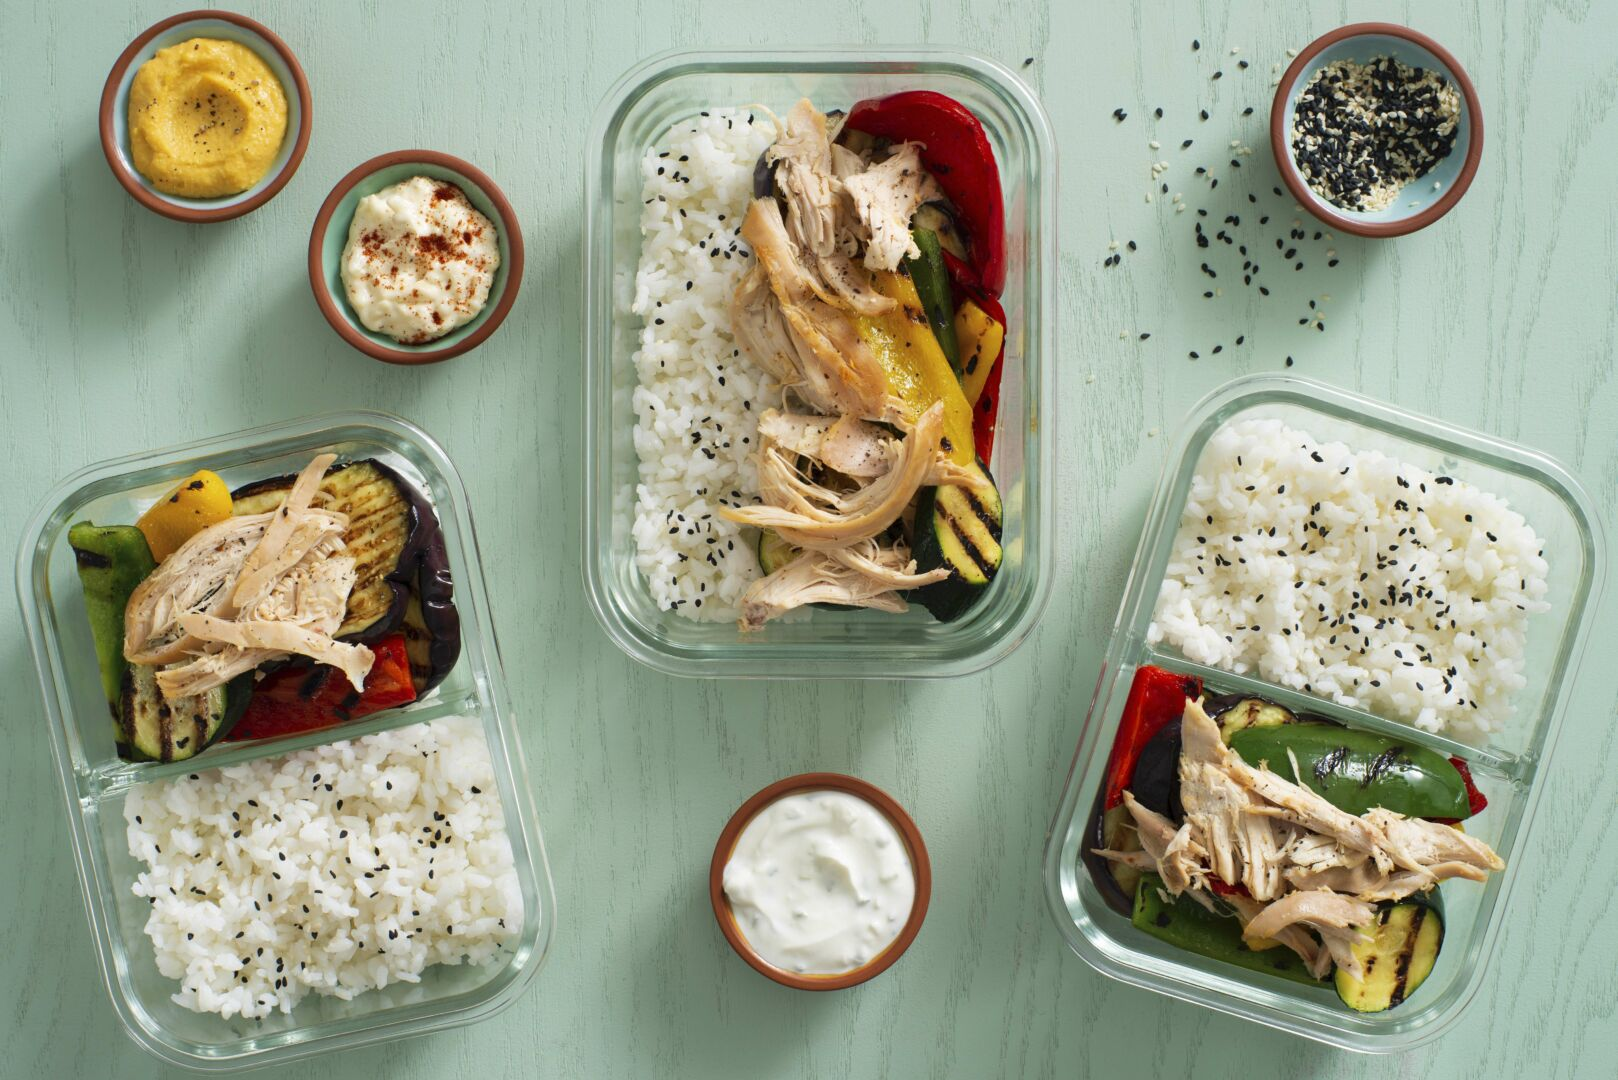 Chicken and rice meals with grilled vegetables